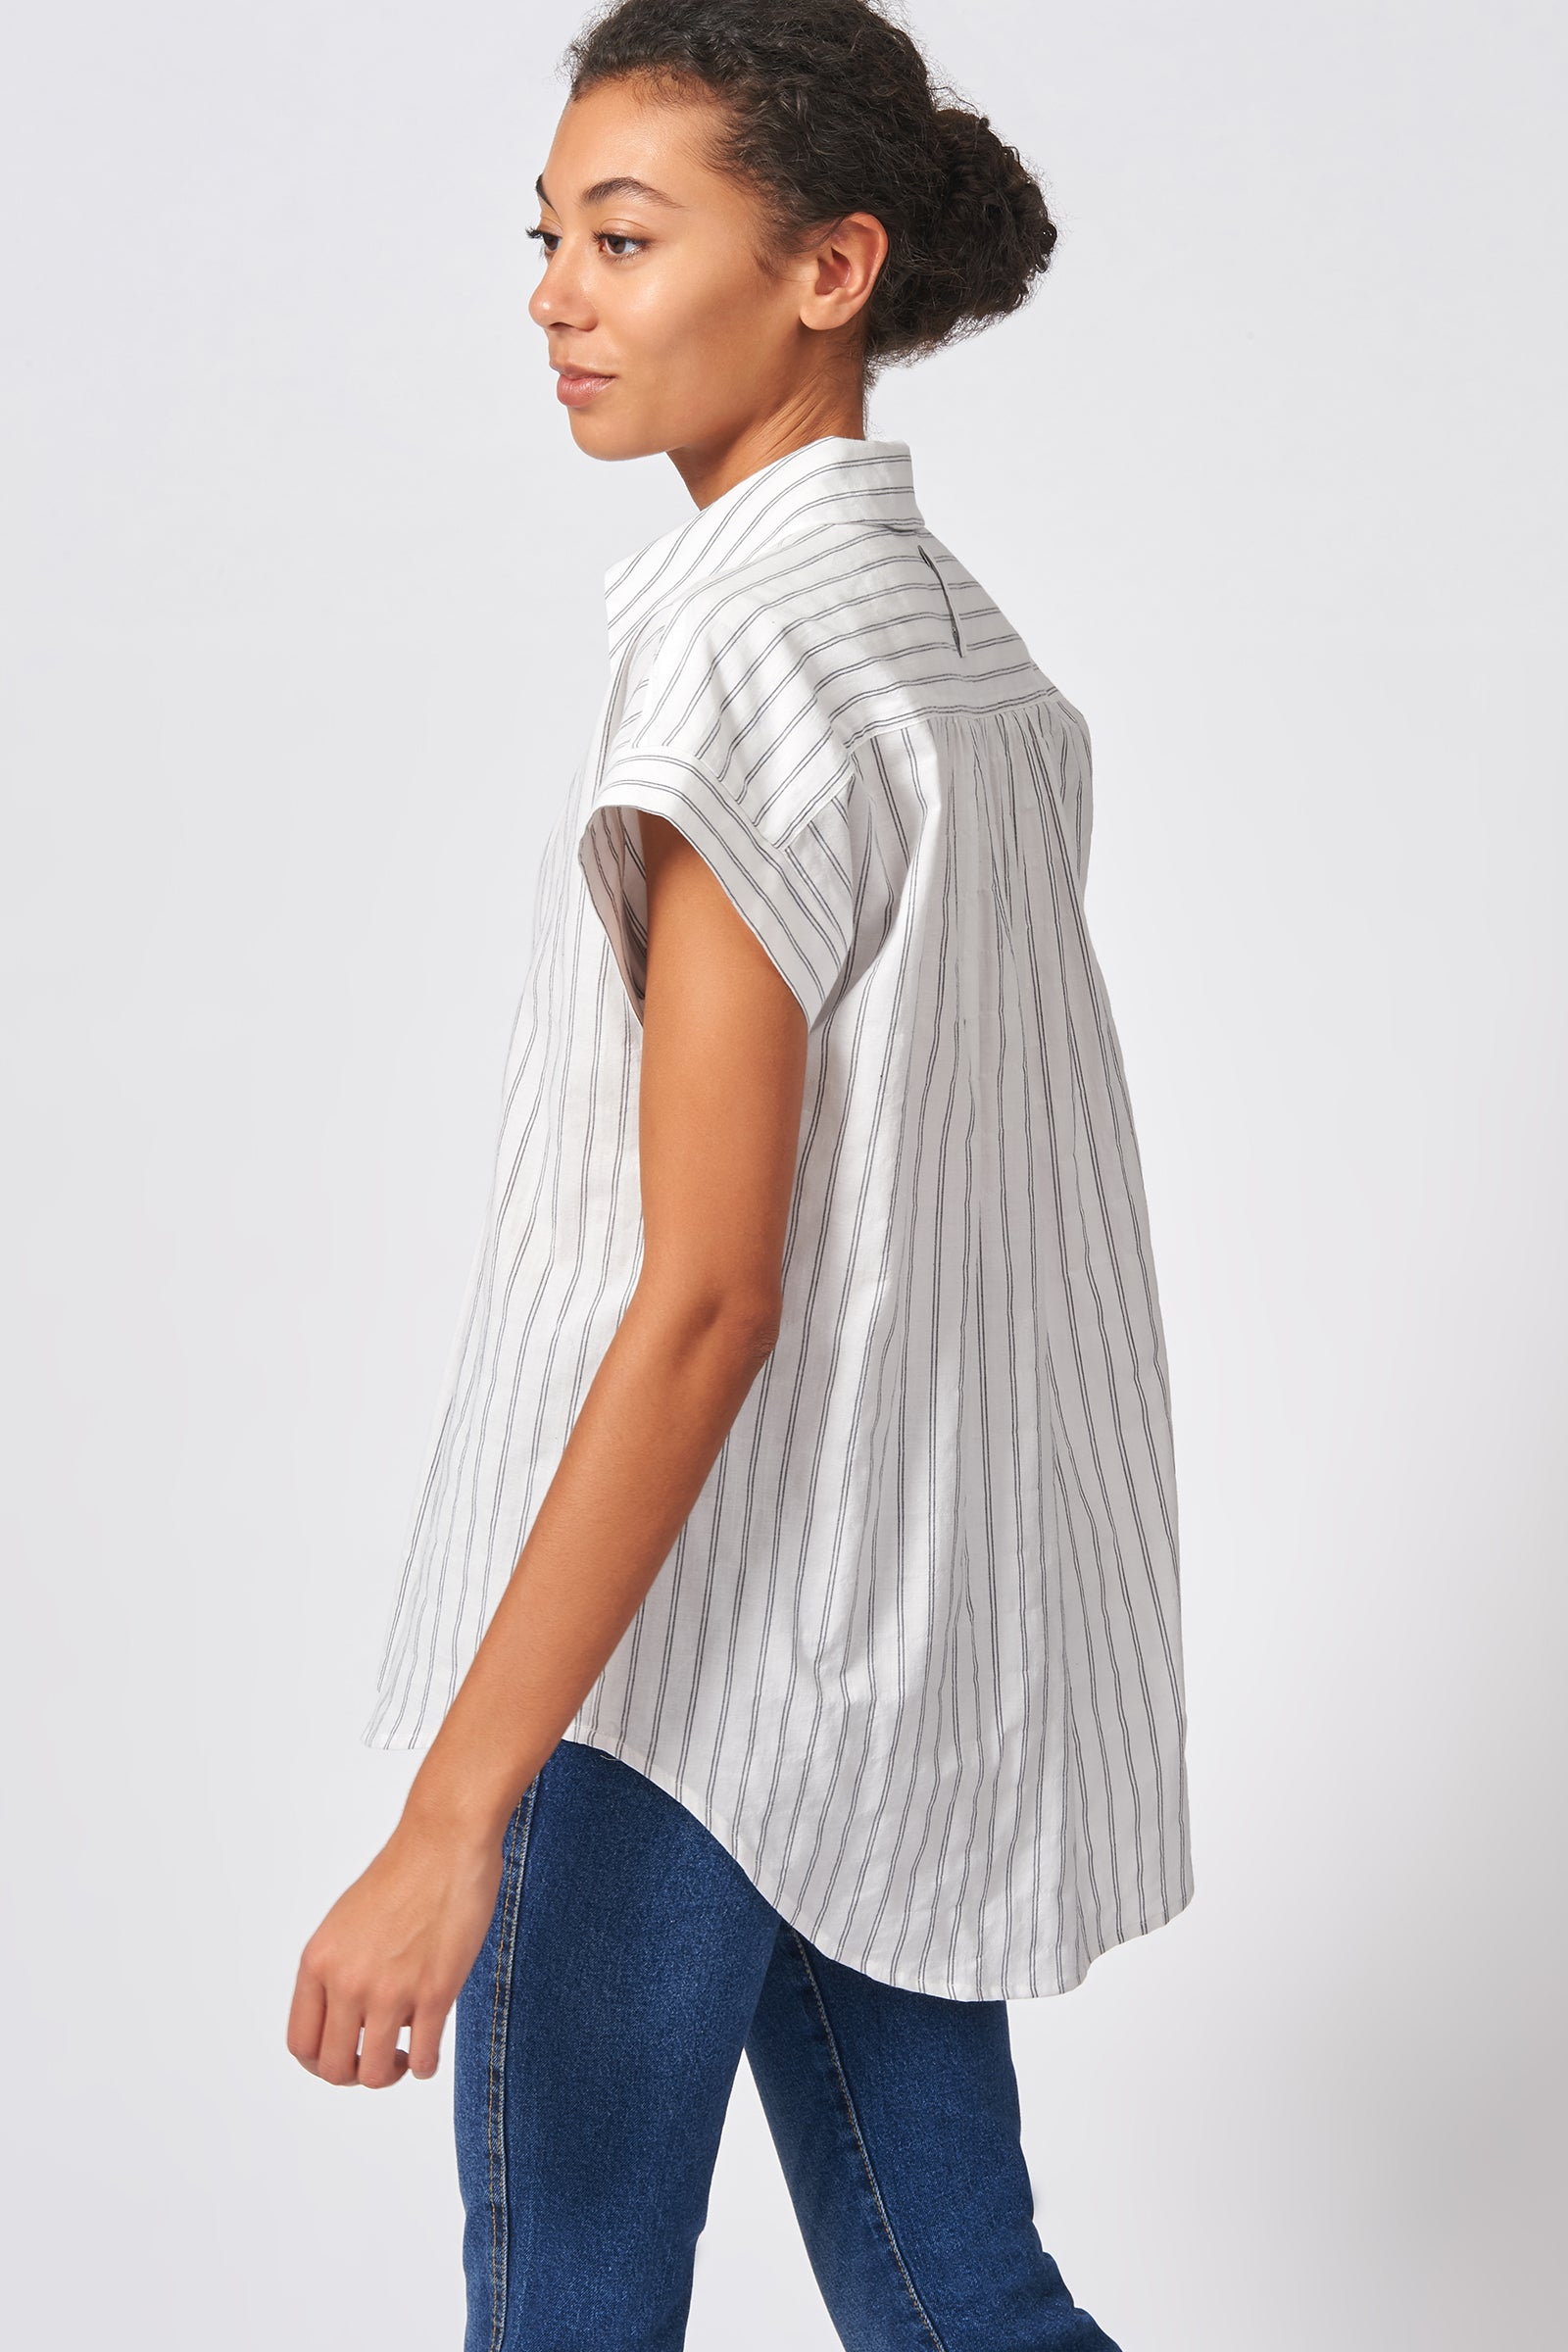 Kal Rieman Shirred Back Collared Top in Black Stripe on Model Side View